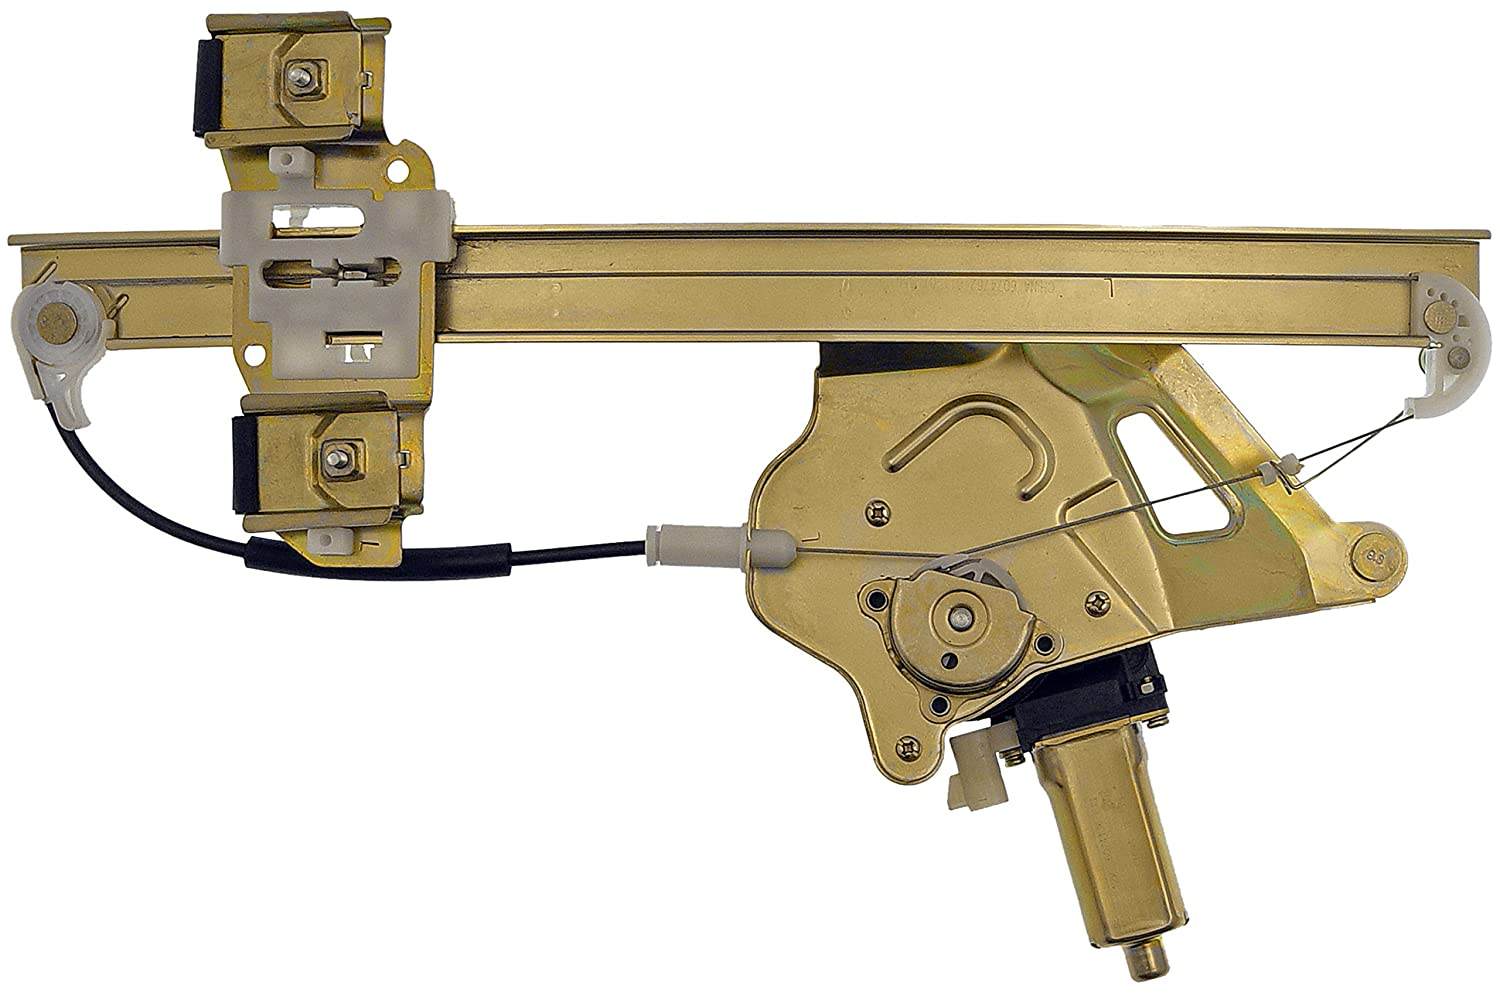 Amazon Dorman 741 762 Buick LeSabre Front Driver Side Window Regulator With Motor Automotive